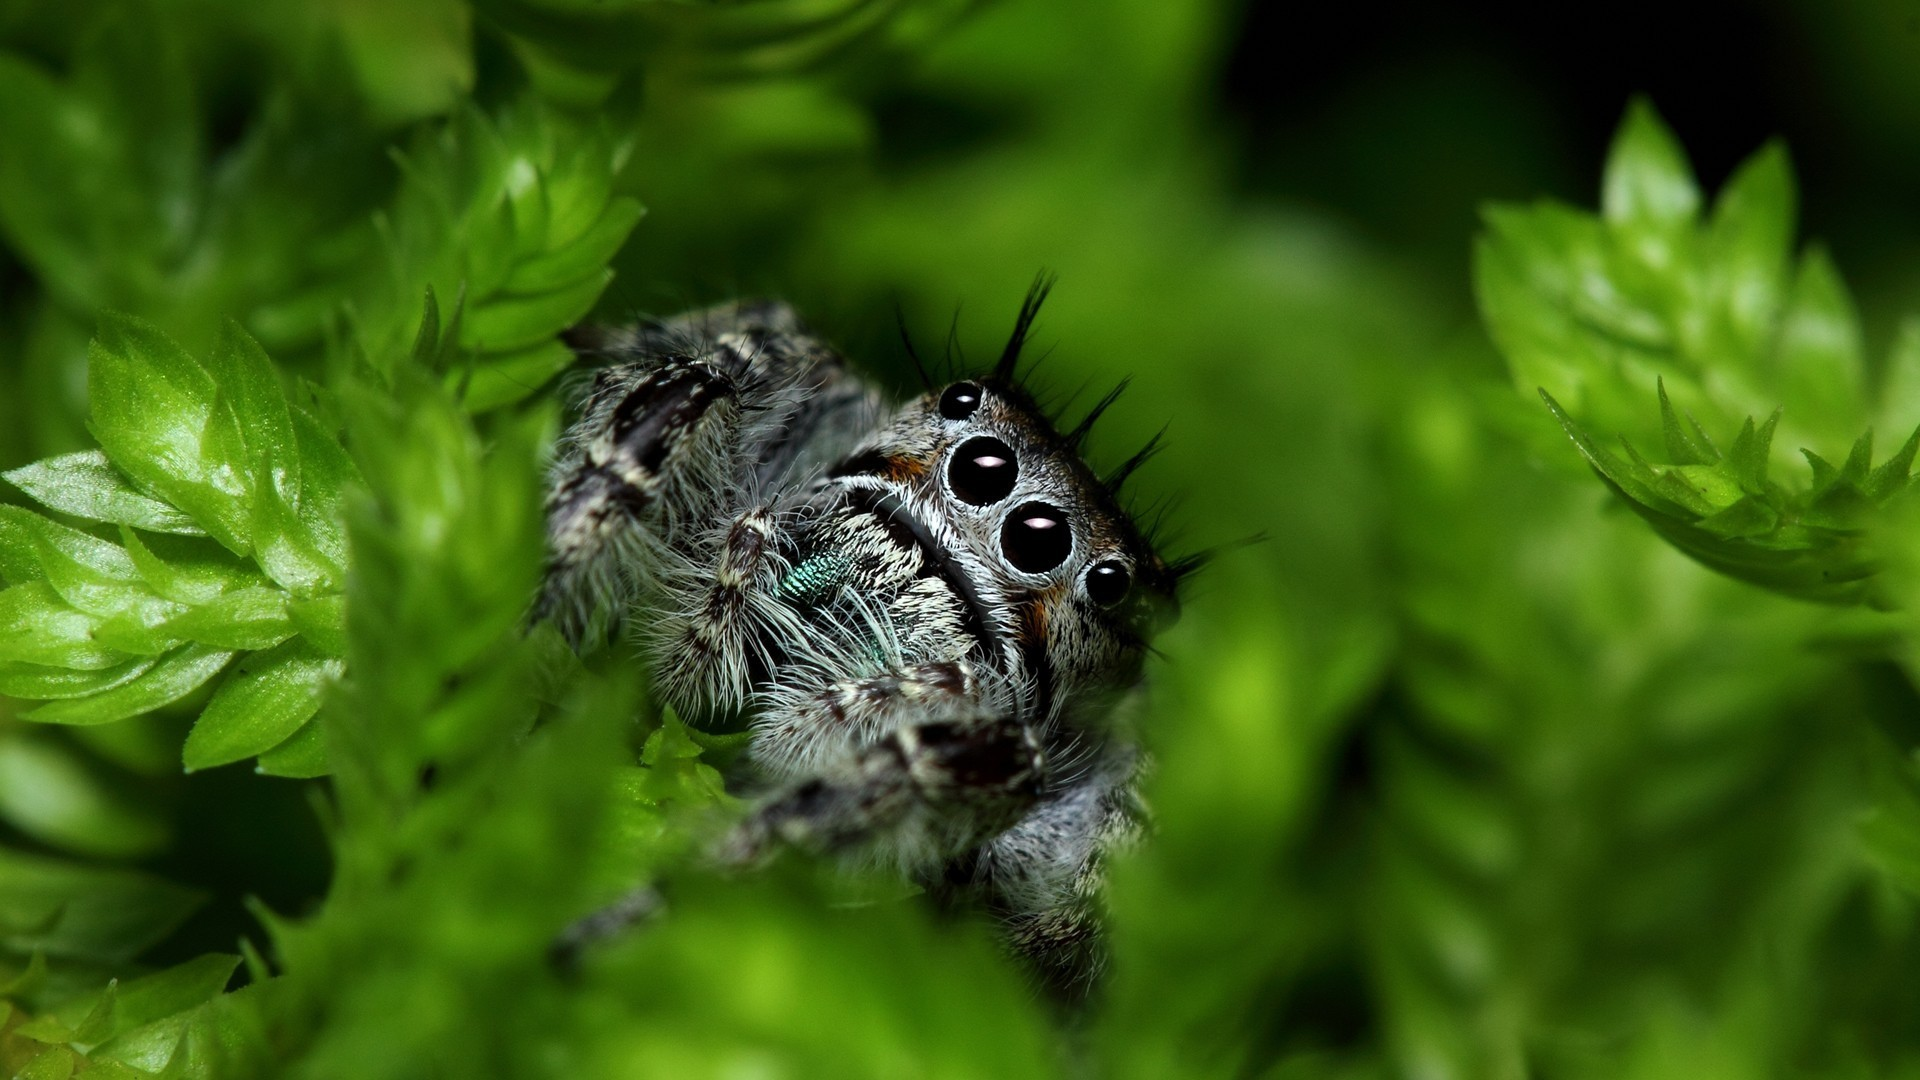 Spider Wallpaper Scary Themes